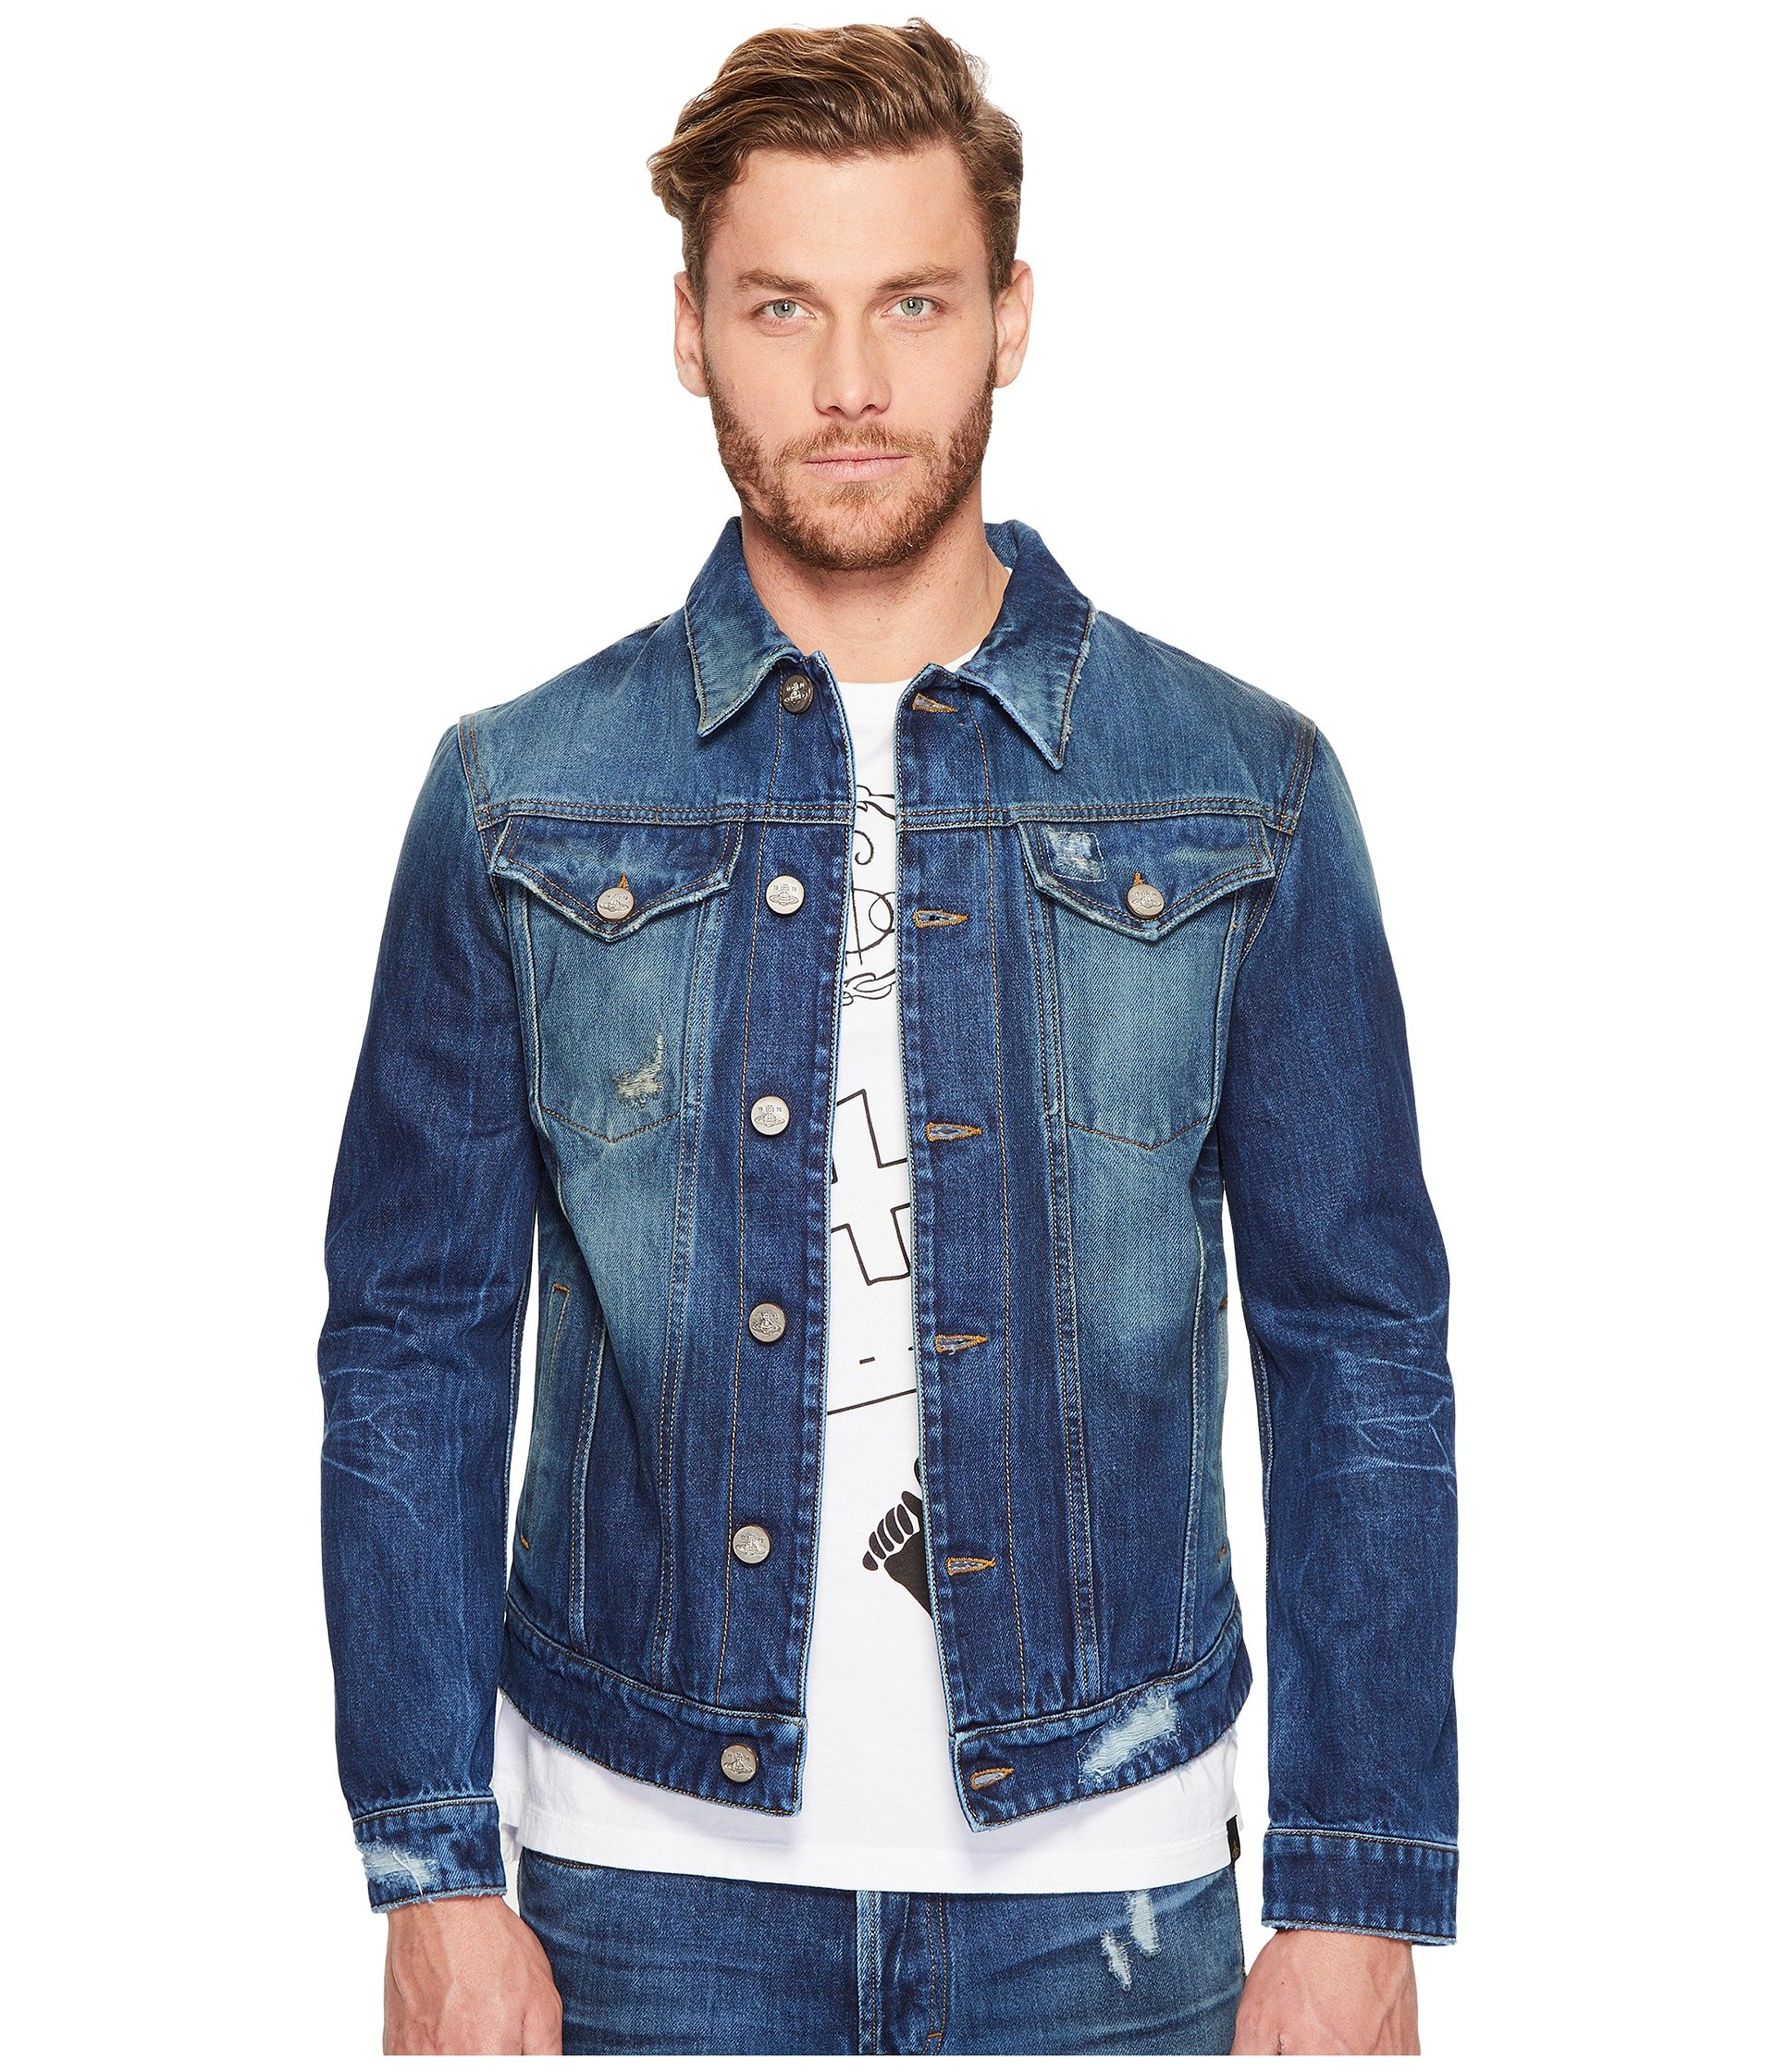 Vivienne Westwood Anglomania Lee D. Ace Classic Jacket In Blue Denim cdf00f1dc